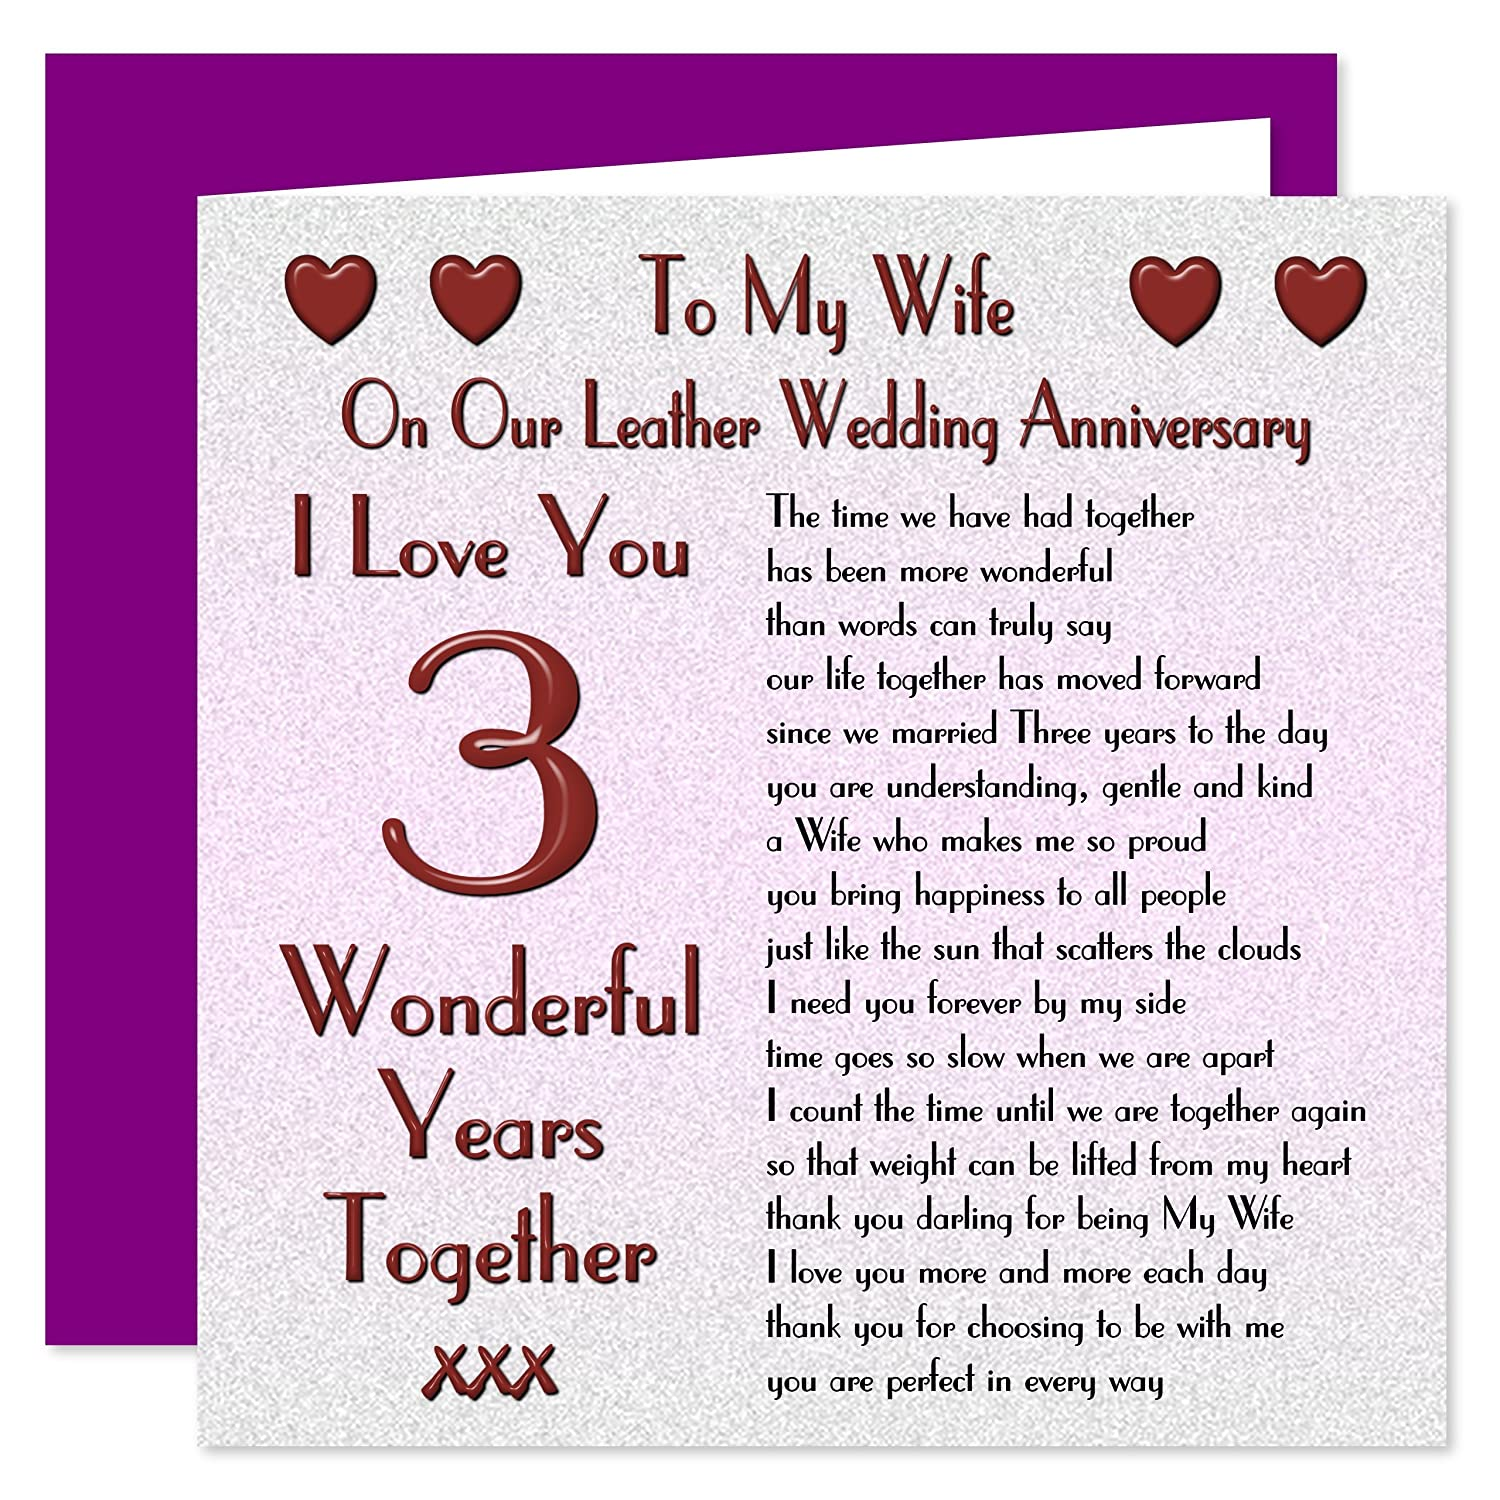 my wife 3rd wedding anniversary card on our leather anniversary